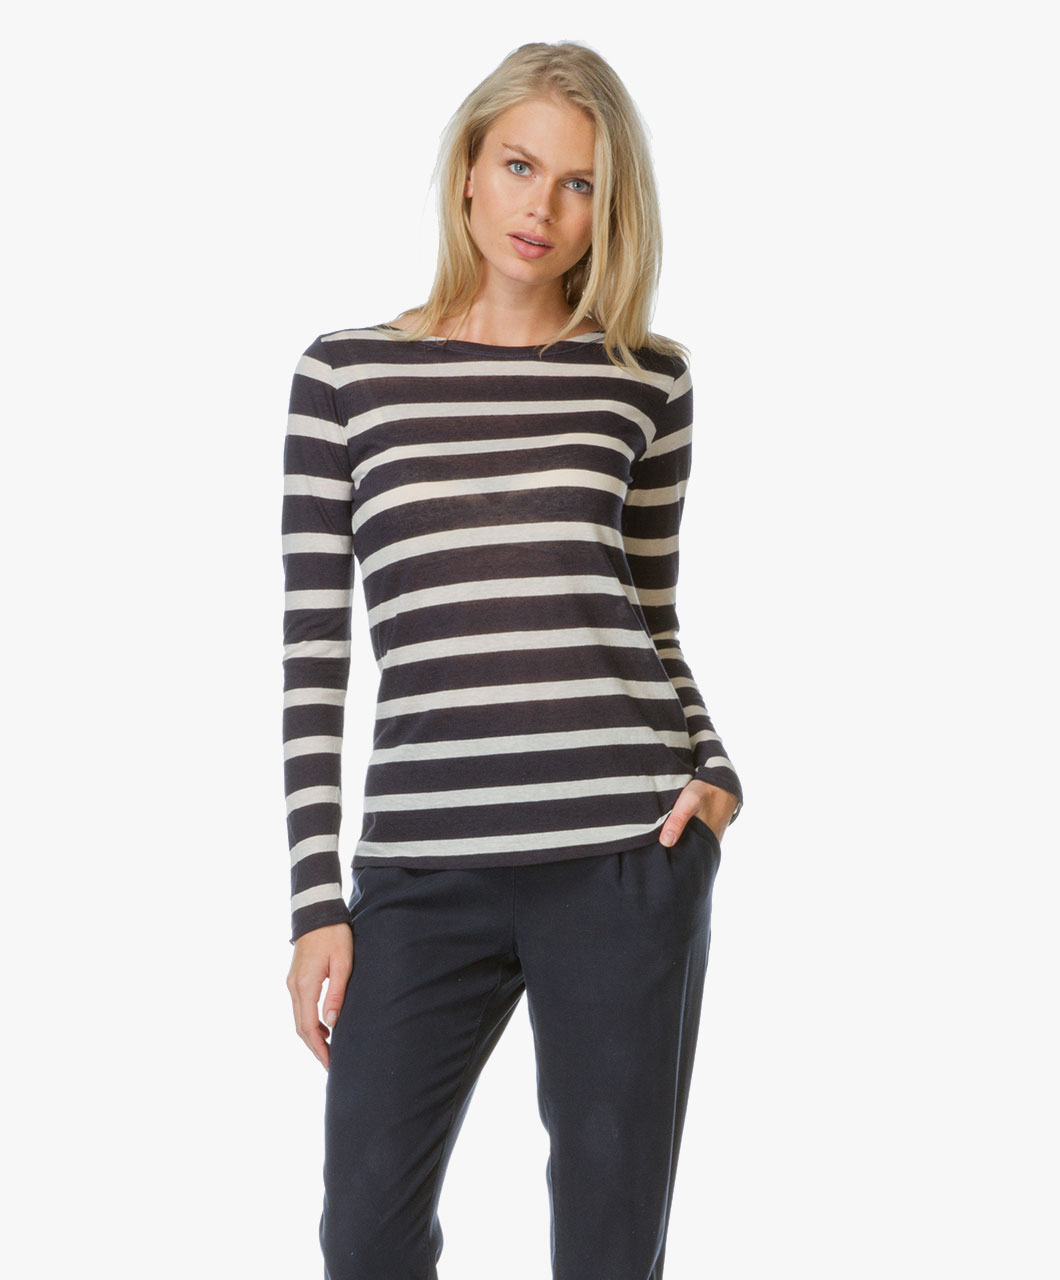 Shop The Look Comfortable And Cool Perfectly Basics